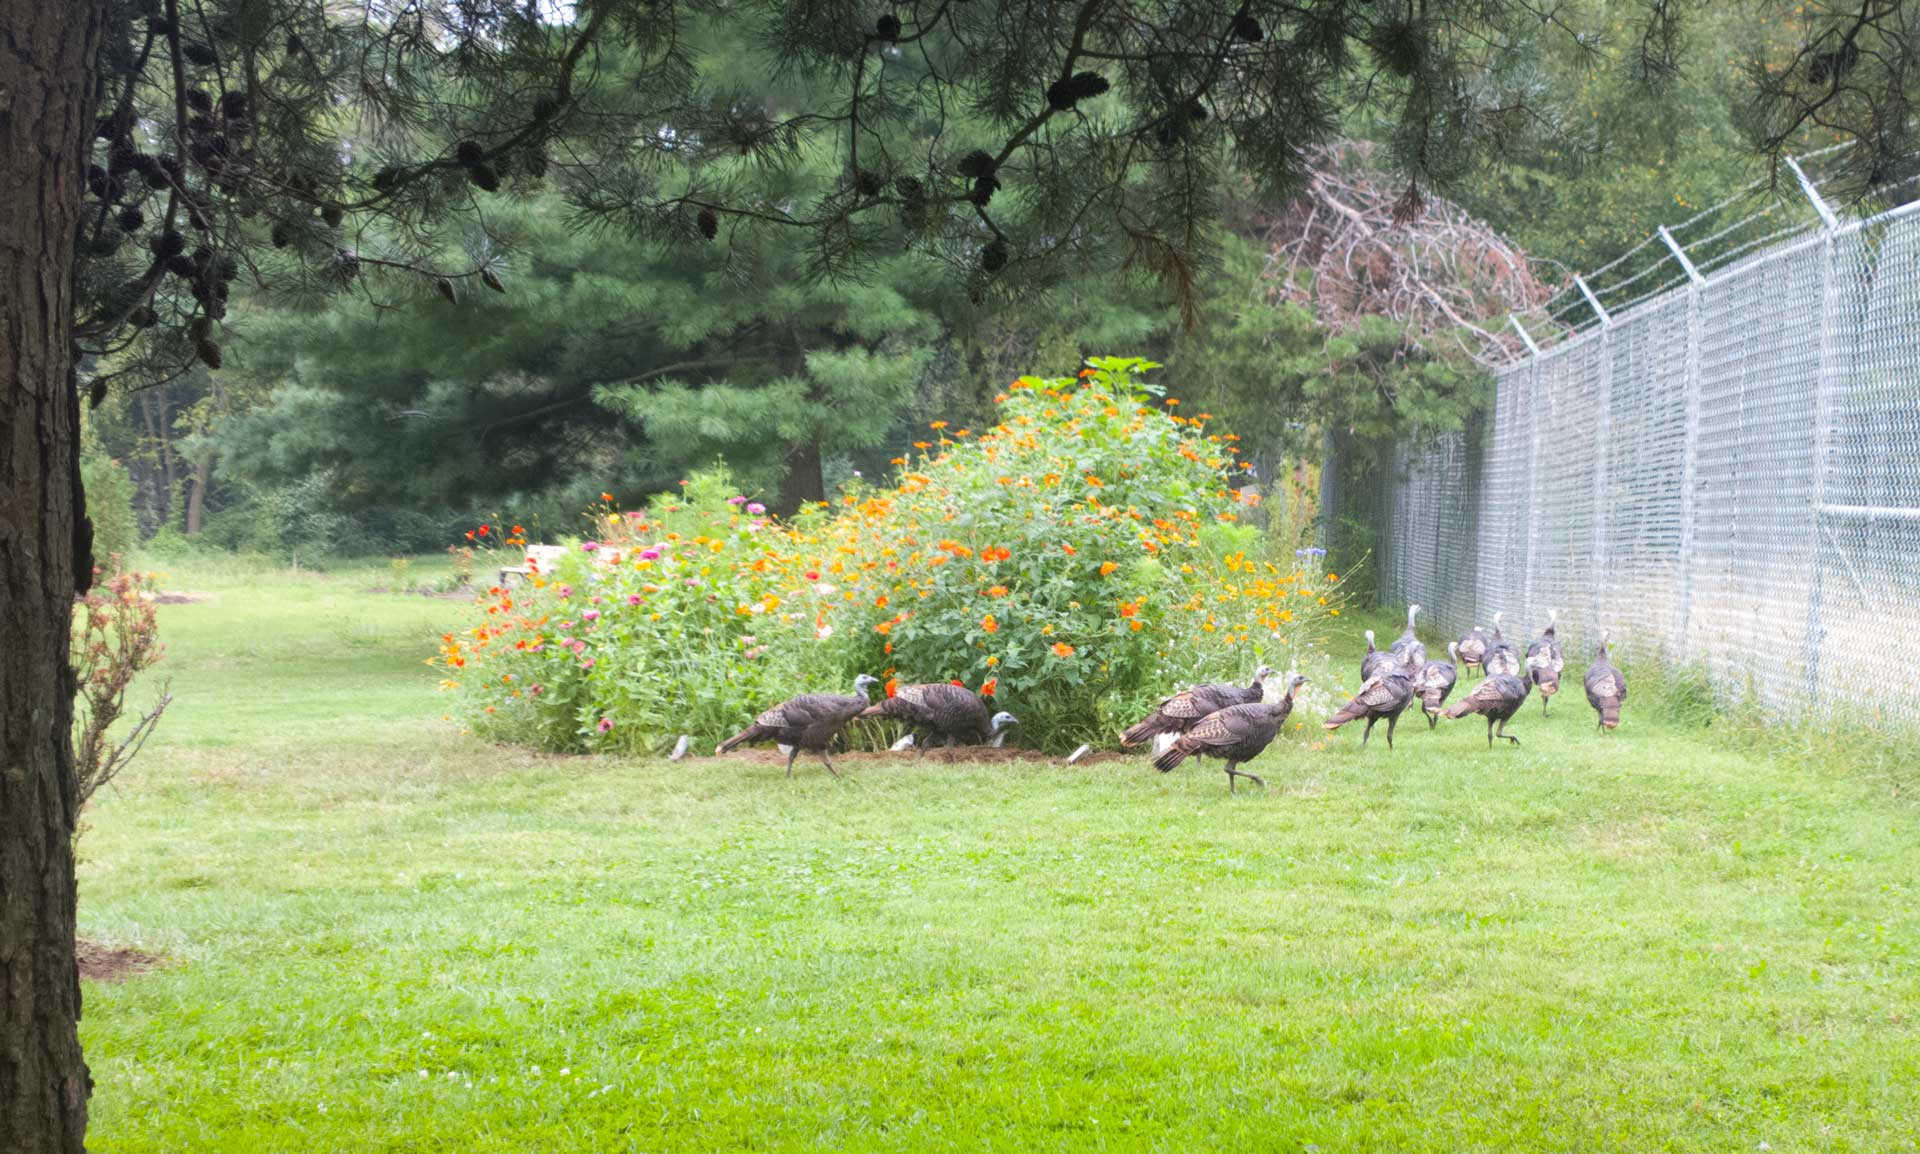 Turkeys at the Pollinator Garden